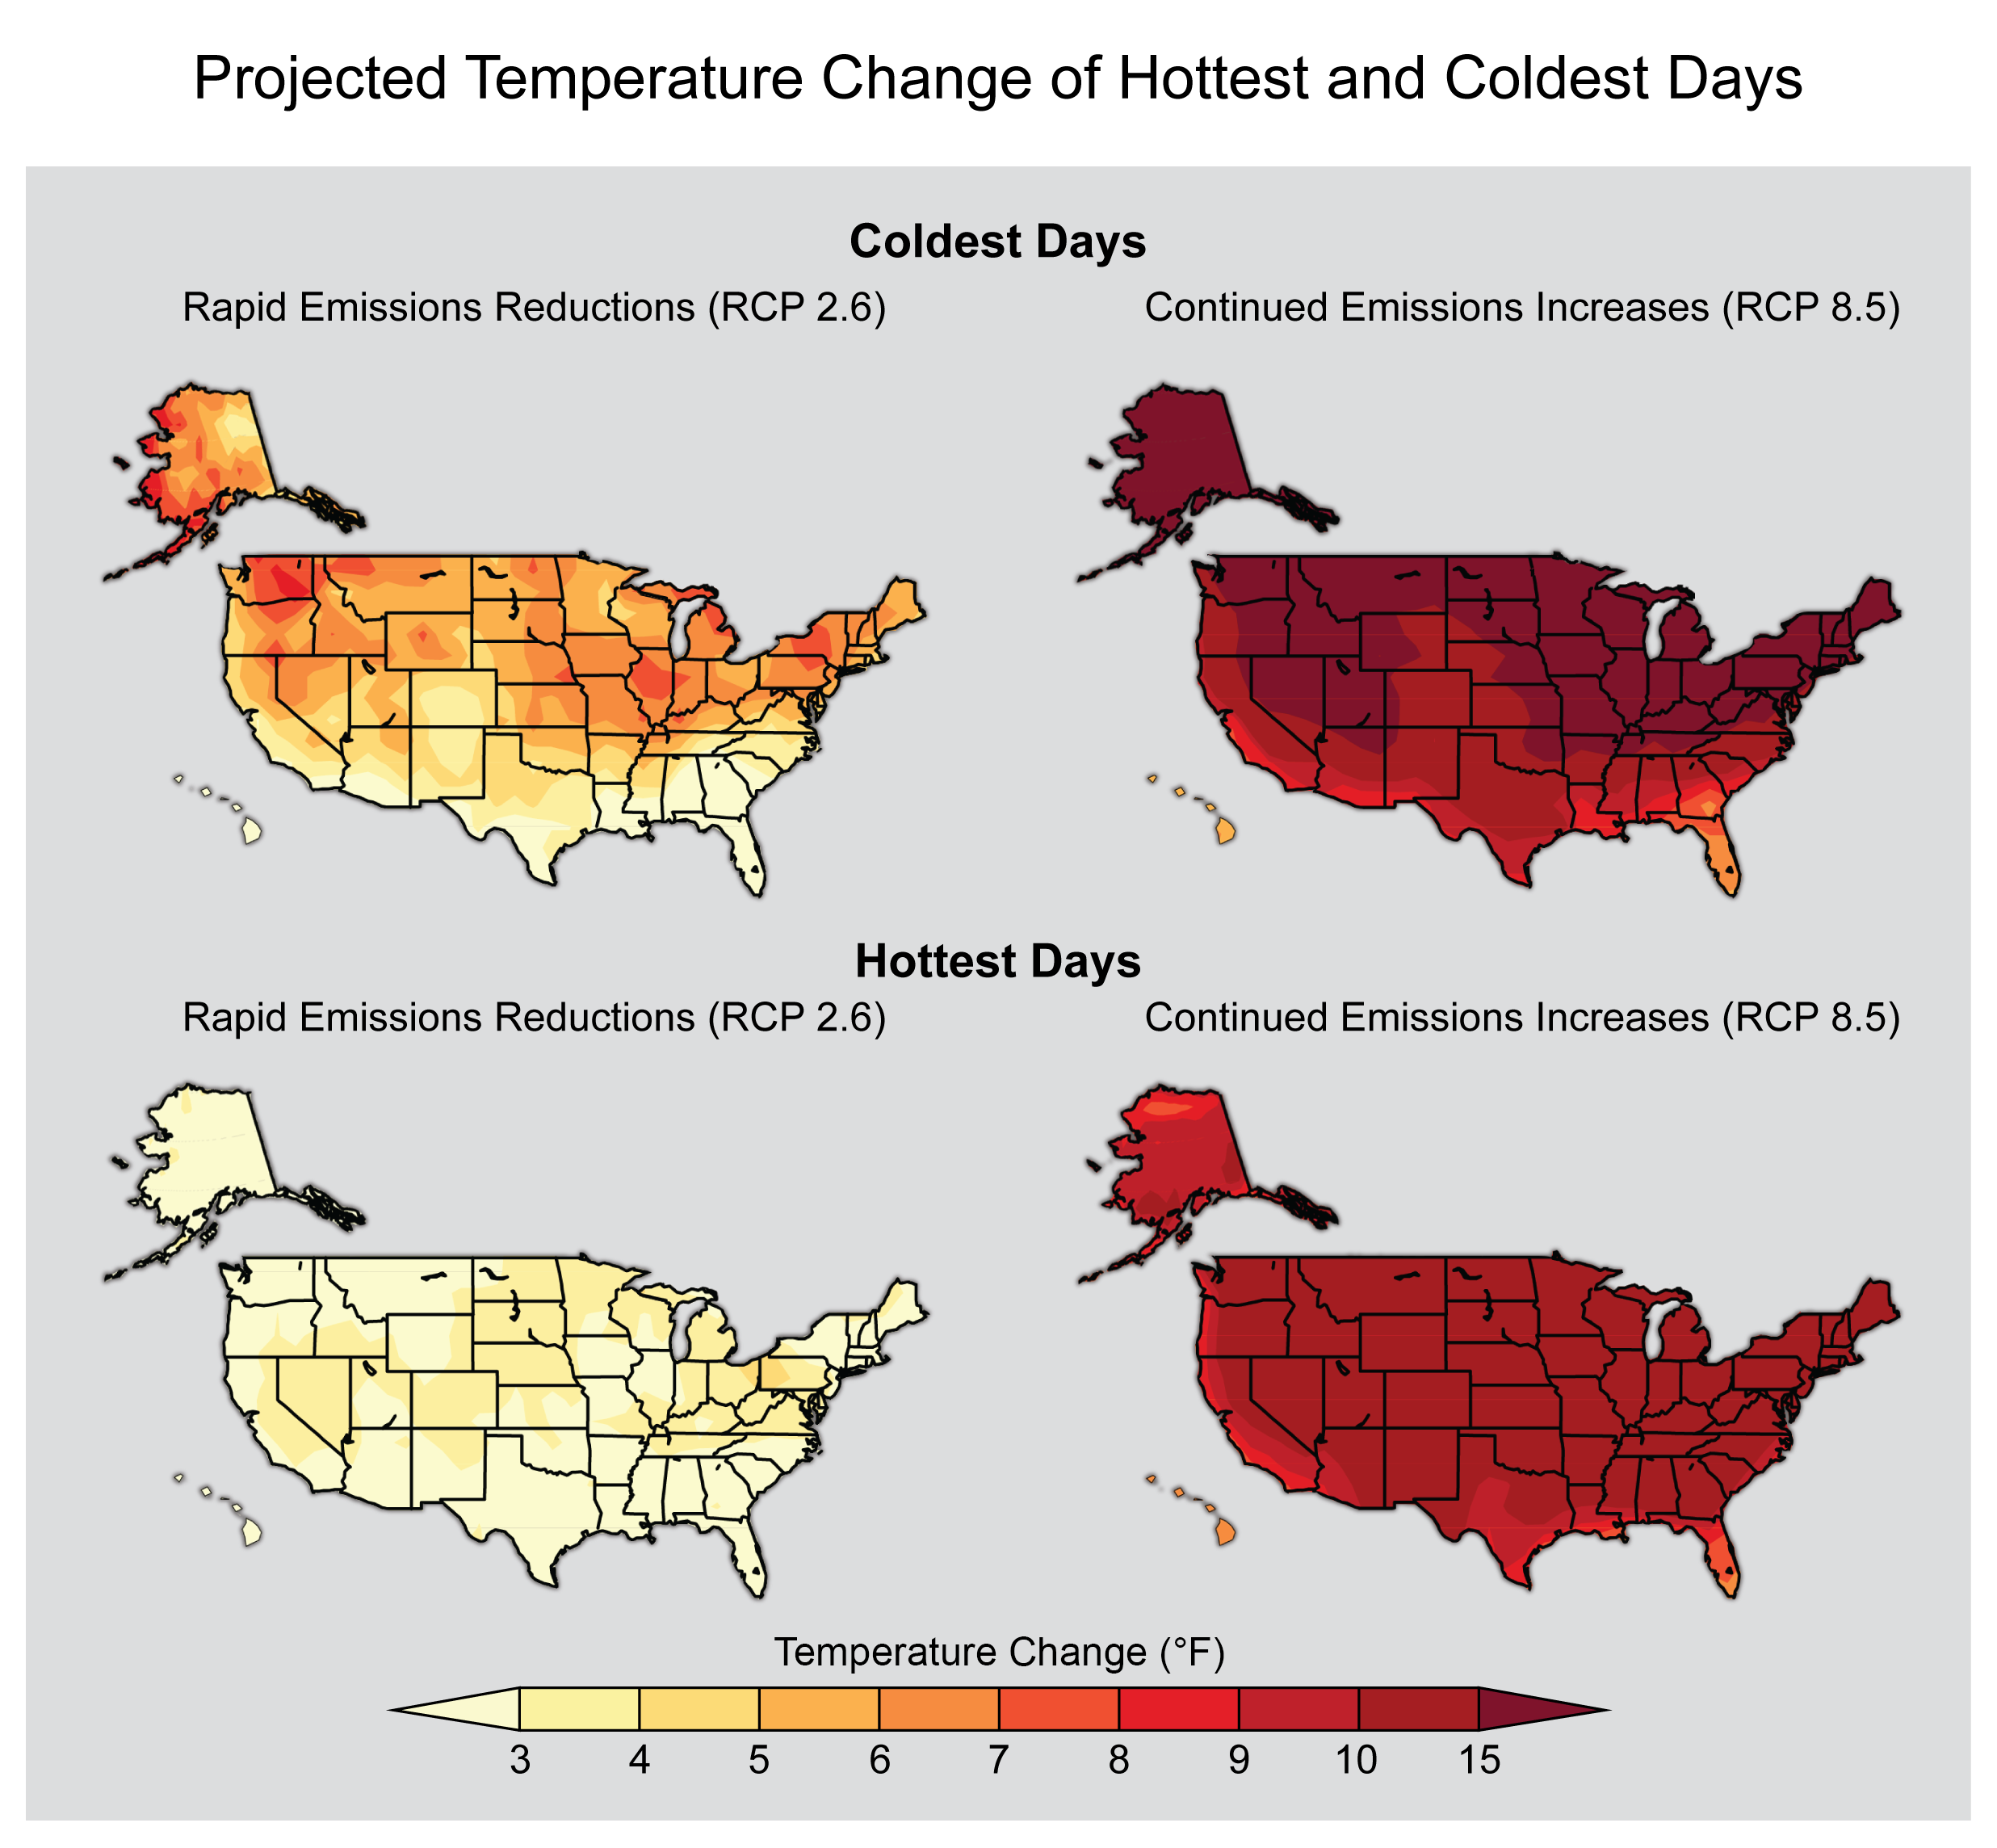 Projected Hot and Cold Days